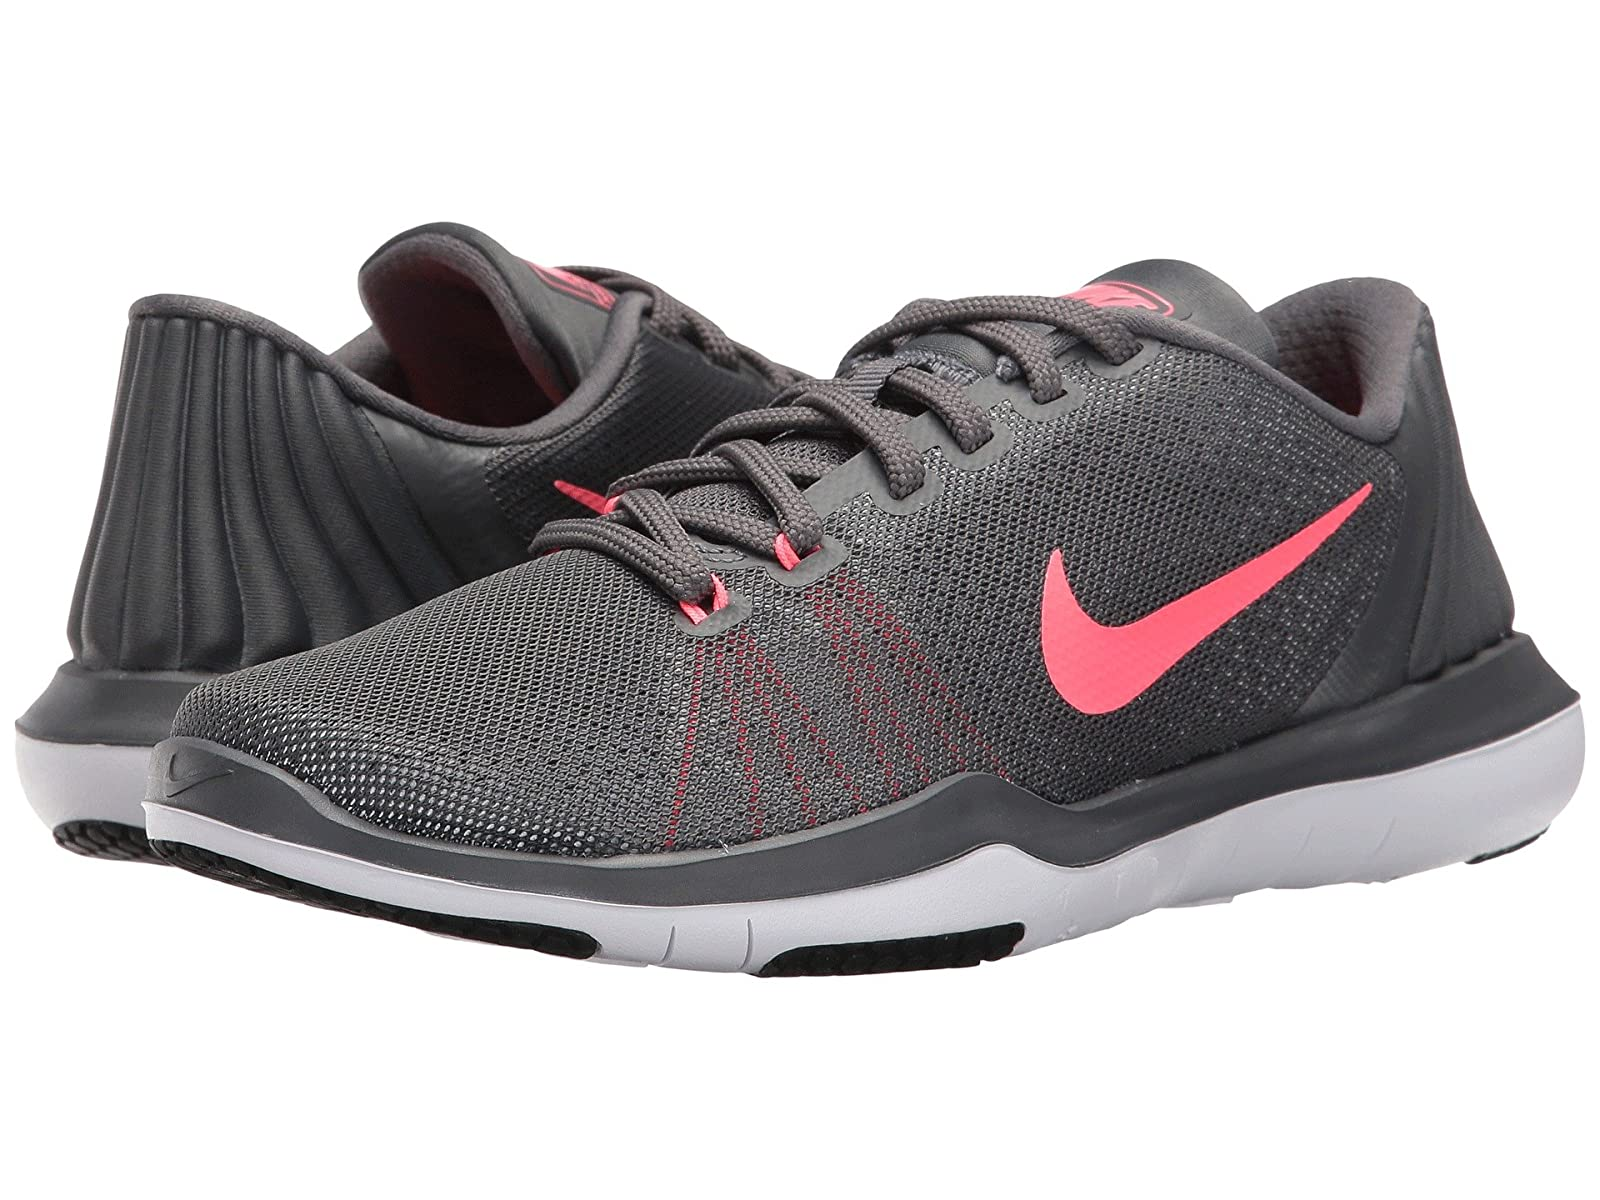 Nike Flex Supreme TR 5Cheap and distinctive eye-catching shoes